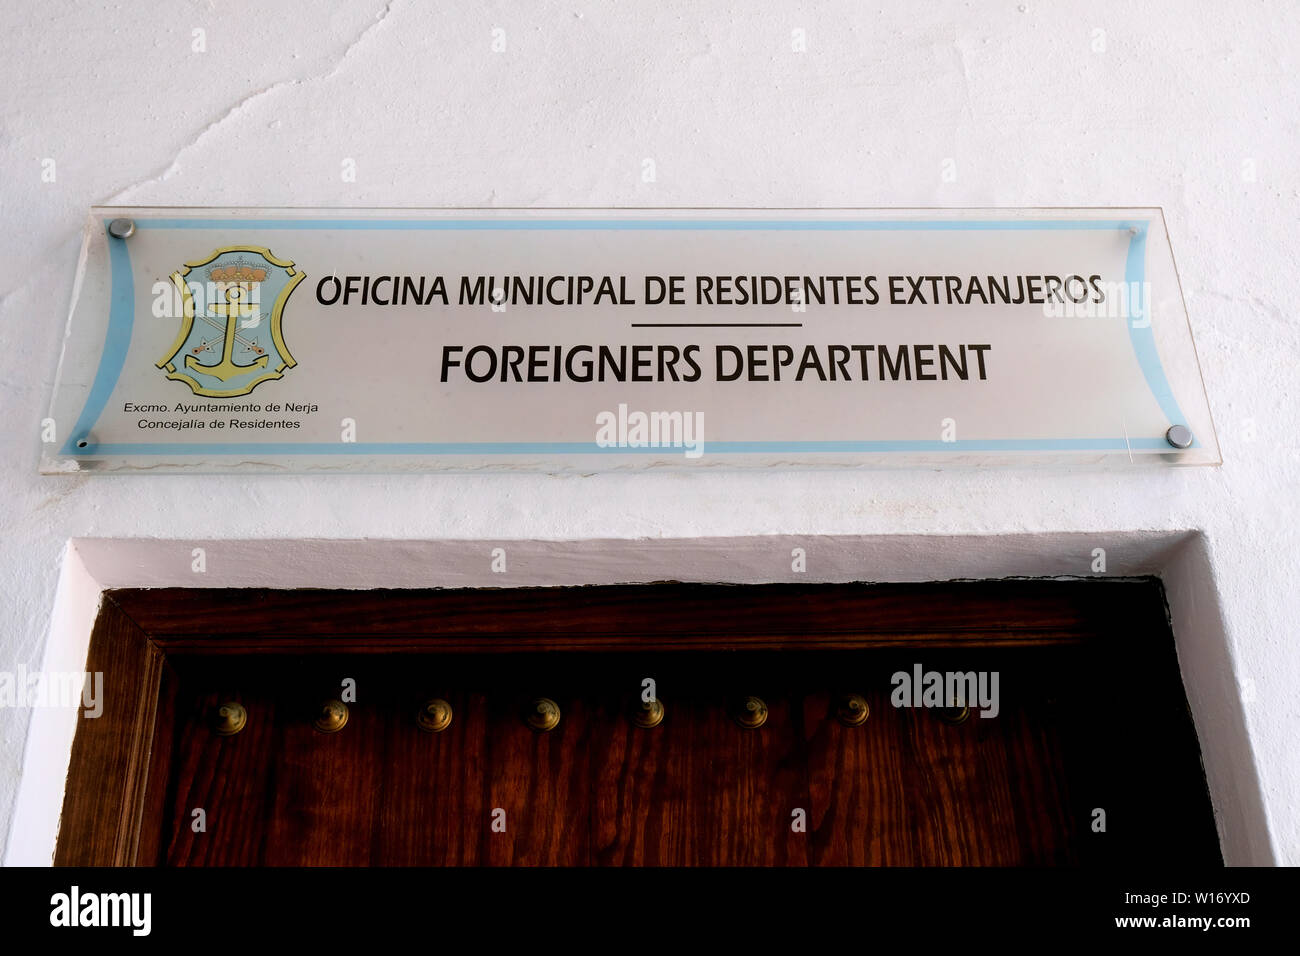 Sign above the Foreigners Department (Oficina Municipal de Residentes Extranjeros) in Nerja Spain; assistance for foreigners living and visiting Spain - Stock Image